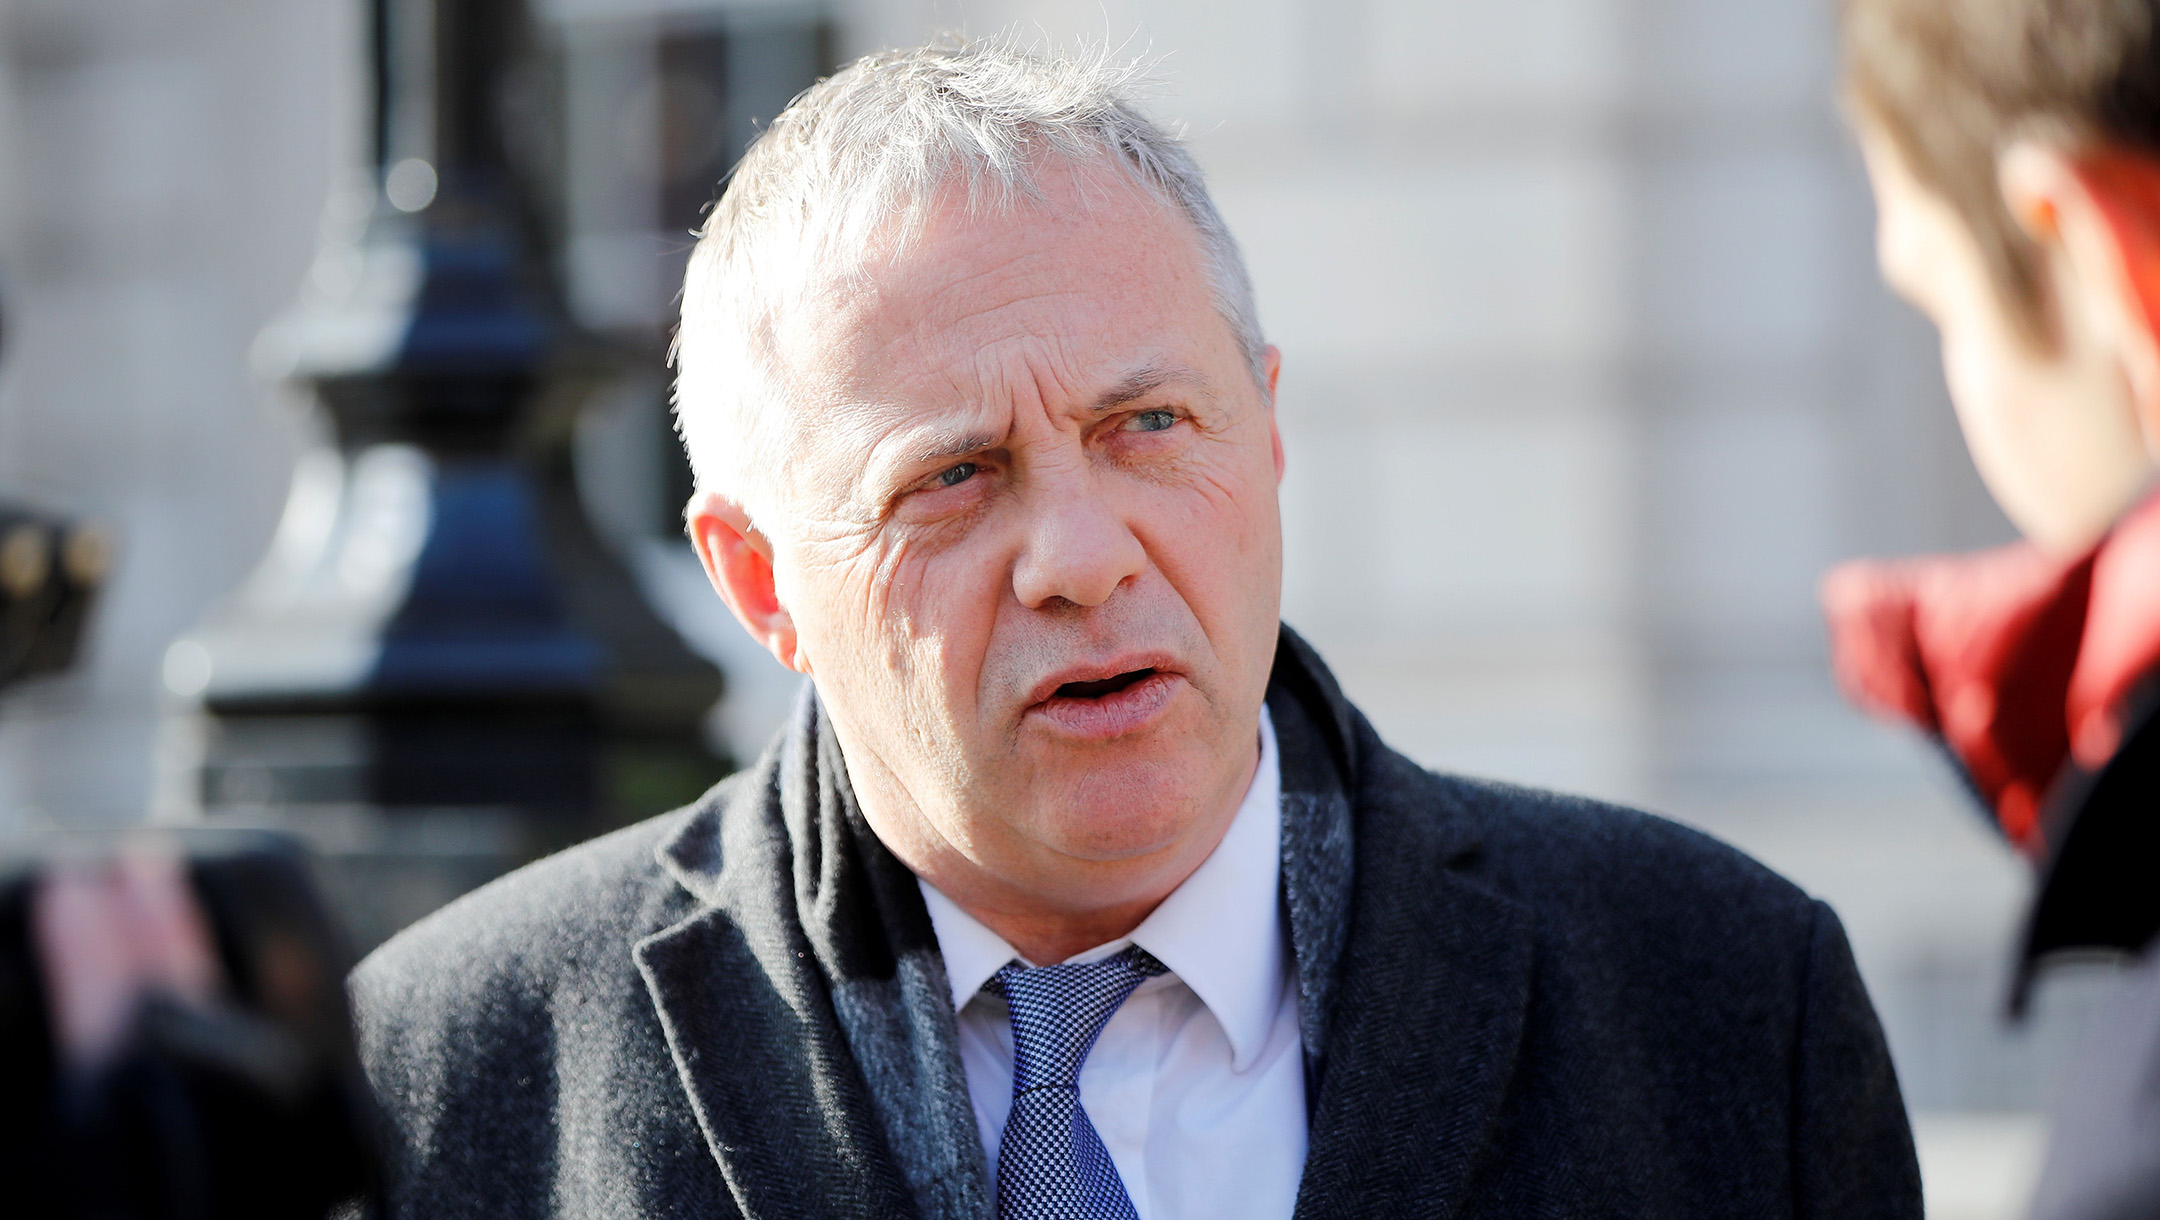 John Mann leaves the Cabinet Office on Whitehall, in central London, the United Kingdom on January 31, 2019. (Tolga Akmen / AFP via Getty Images)